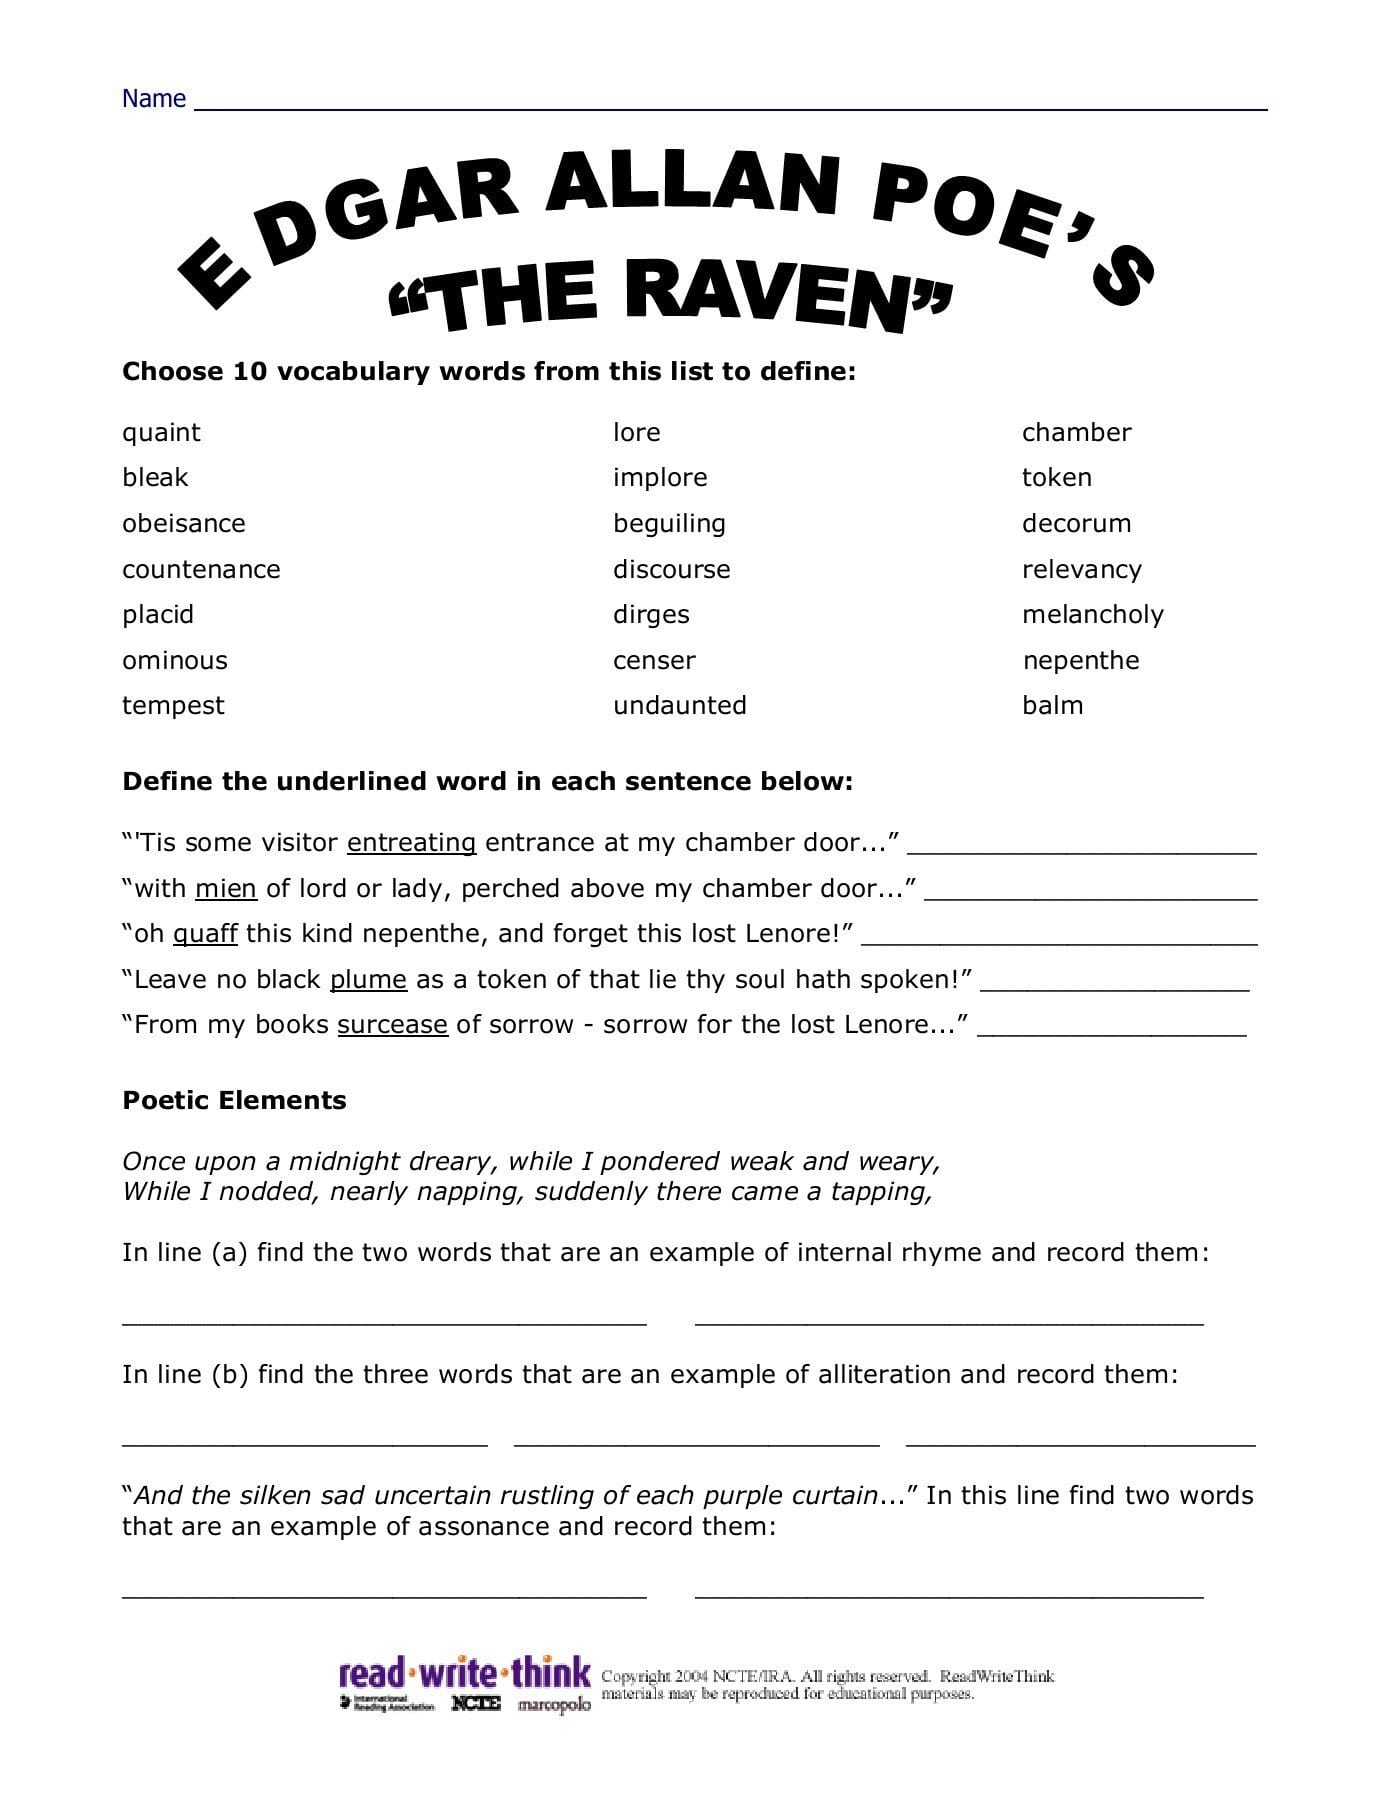 Worksheet The Raven By Edgar Allan Poe